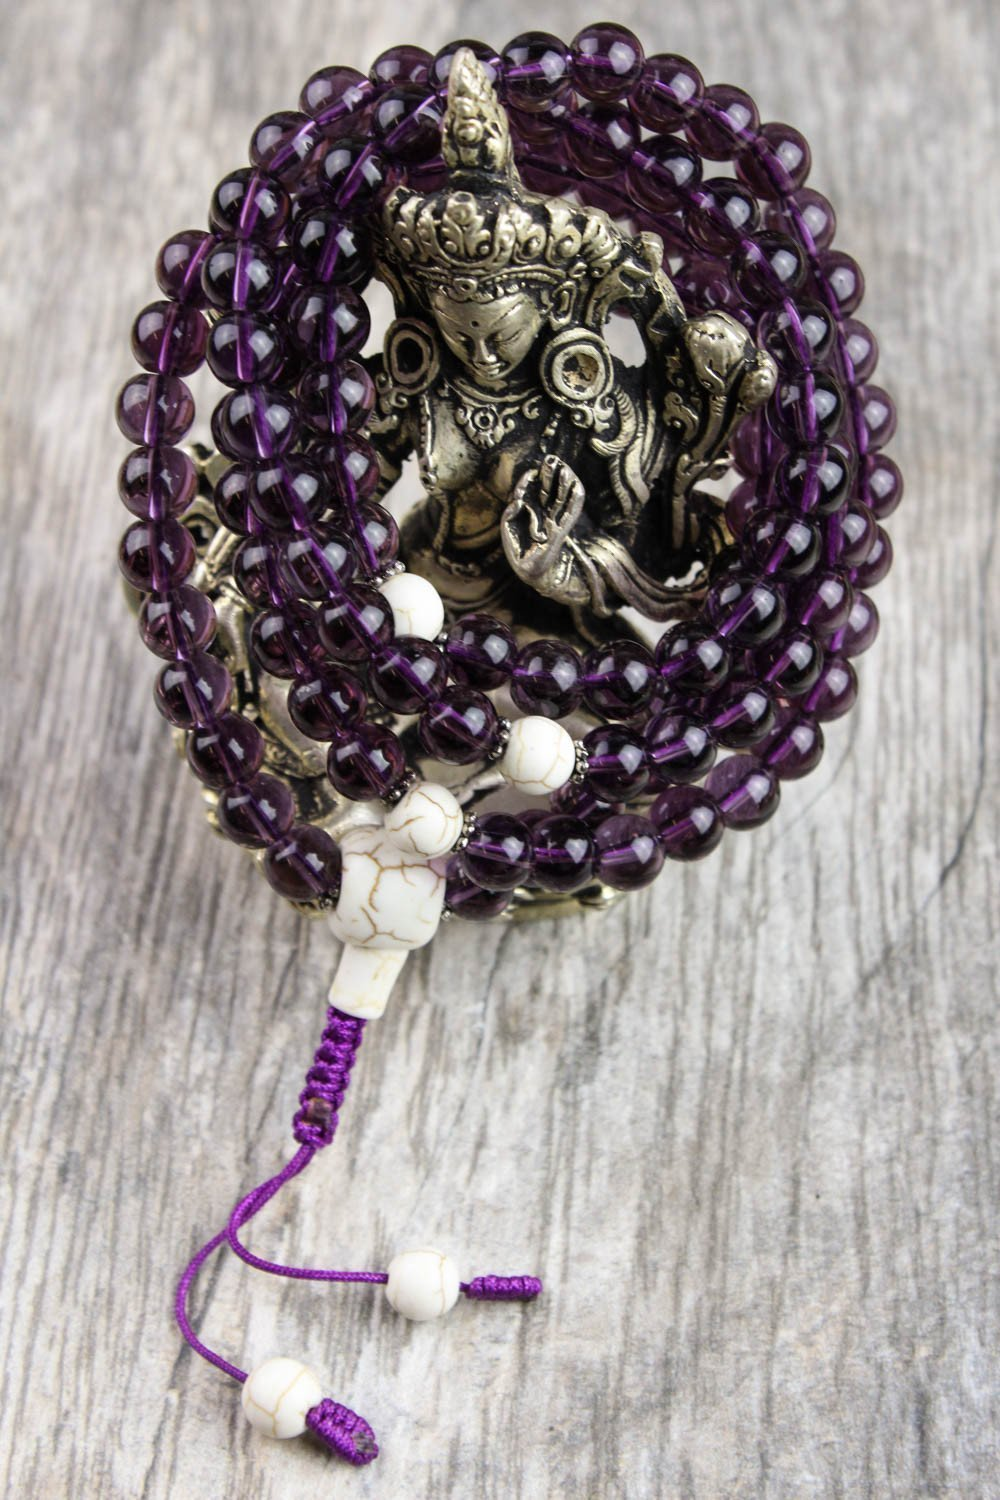 Mala Beads Calming Meditation Amethyst and Magnesite Mala ML527